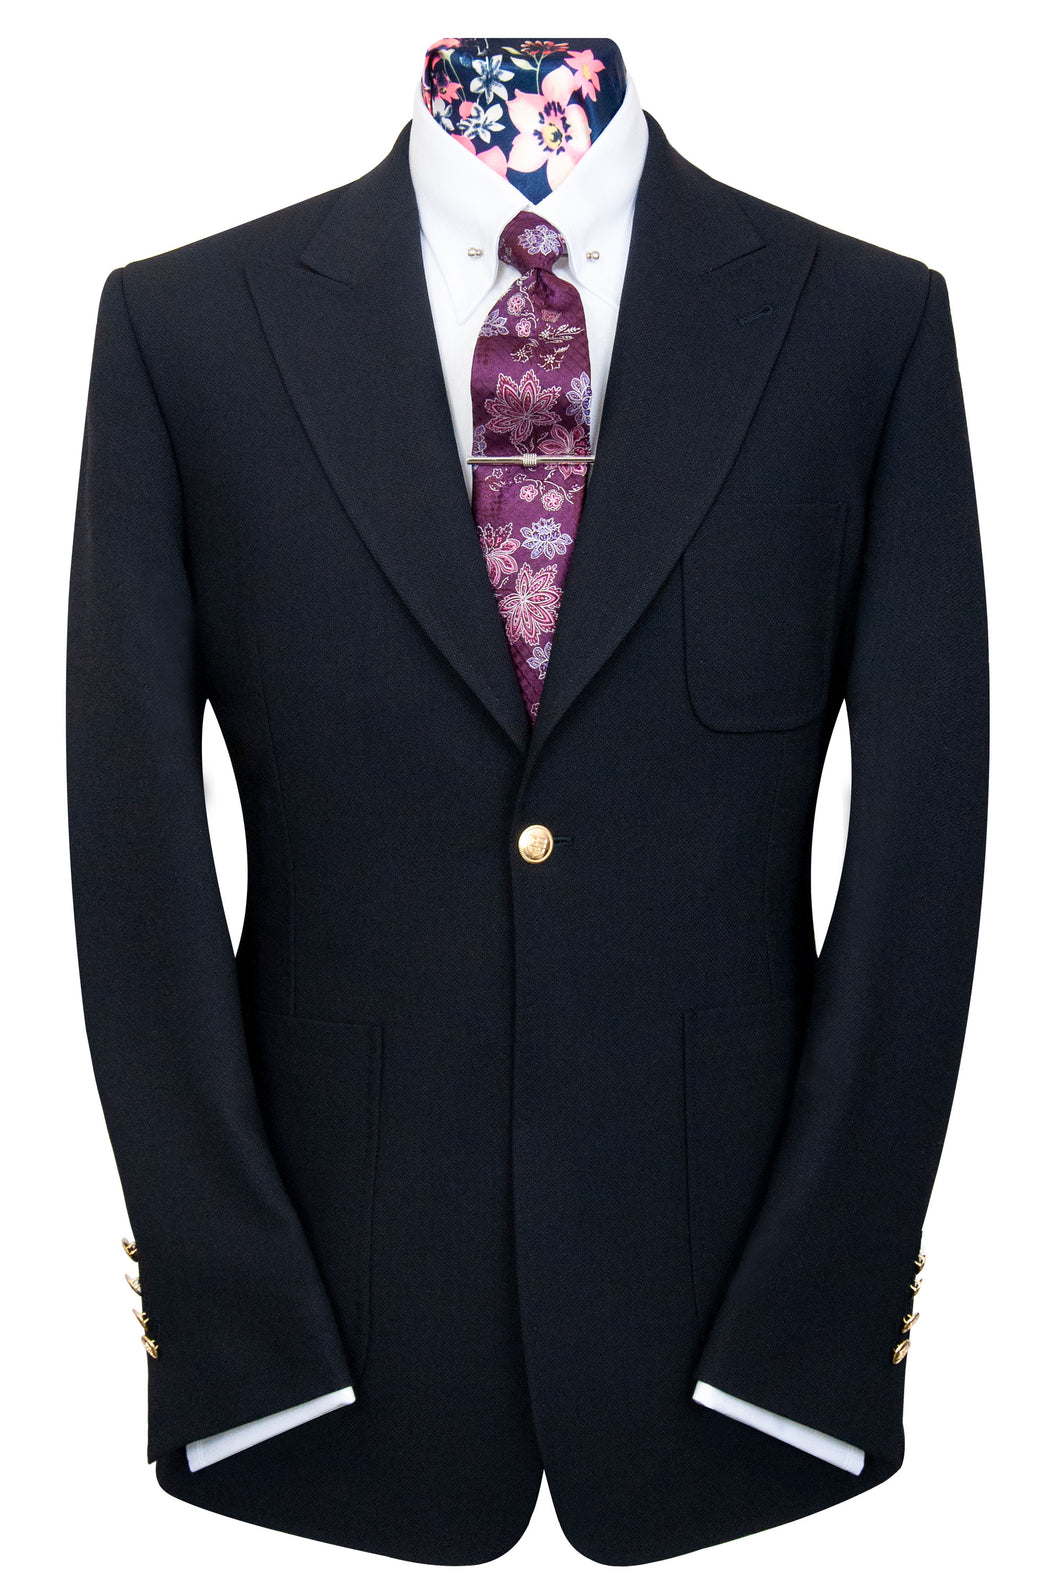 The Chambers Jet Black Blazer